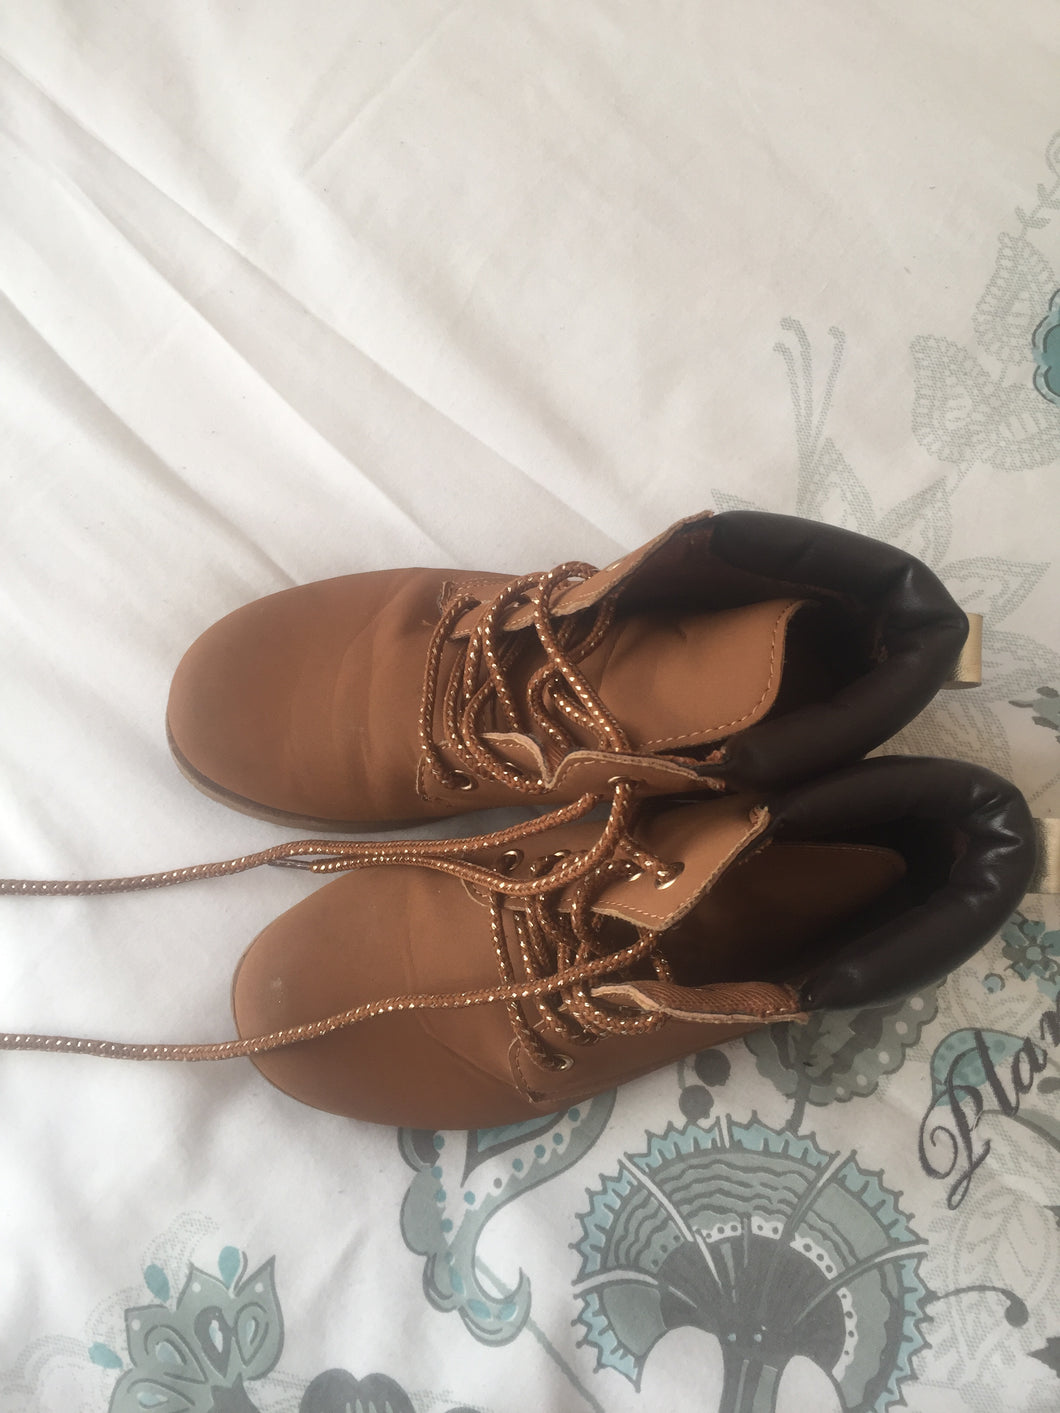 Girl's brown ankle boots-boots-Elinye_ithuba